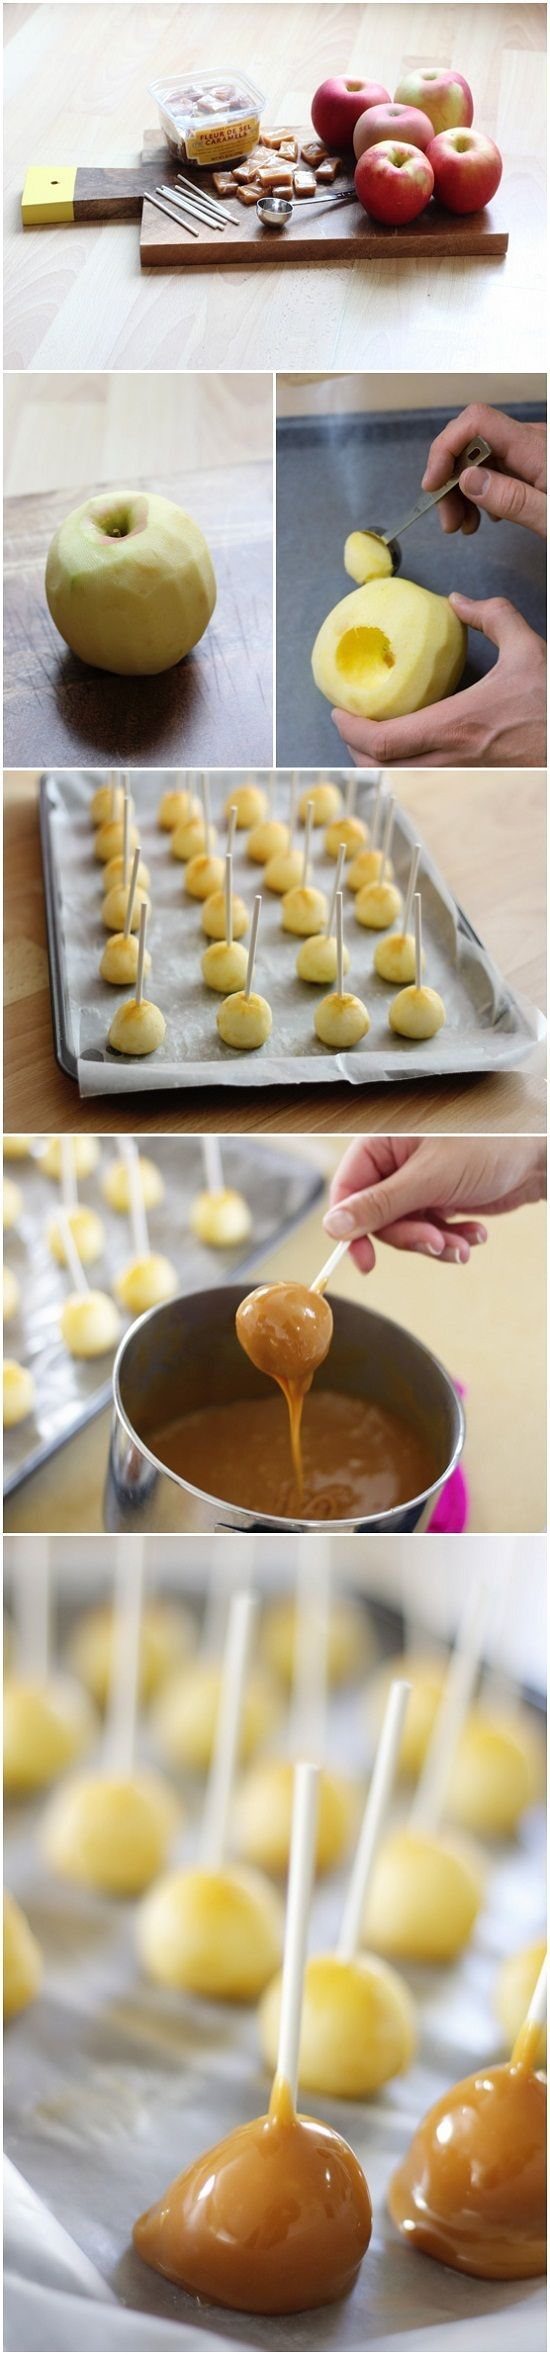 236298311673530791 HA! Totally dangerous, would eat em all up   > DIY Mini Caramel Apples #appetizer #party #movienight